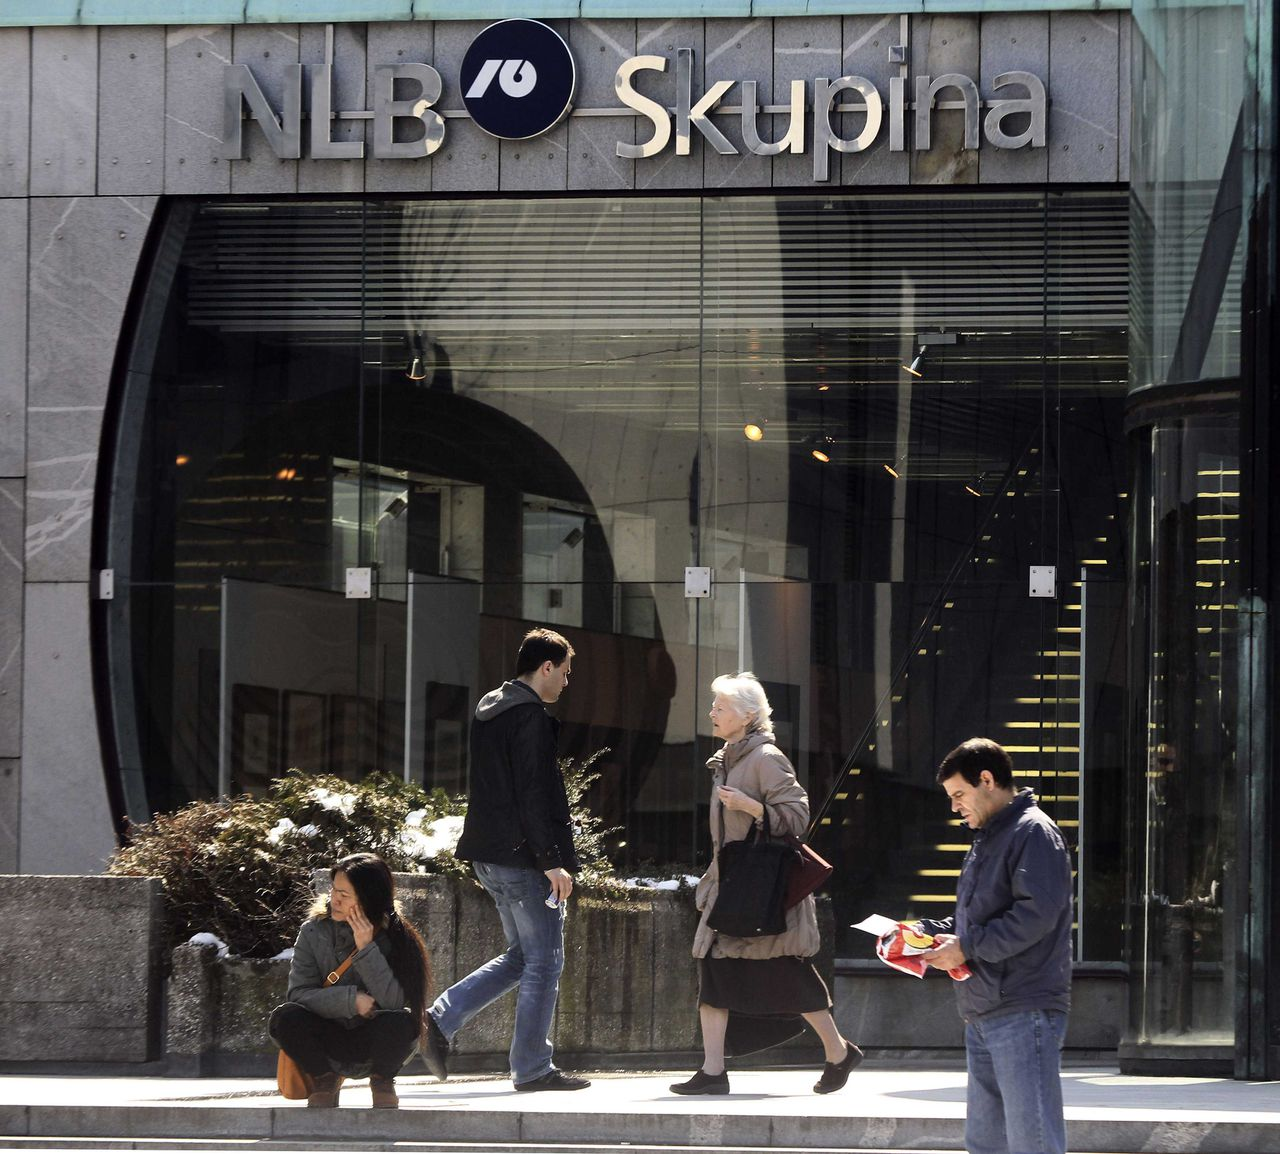 "People walk in front of the Ljubljanska banka building in Ljubljana, March 28, 2013. Cyprus may be a ""special case"" in the eyes of European officials, but their handling of its bailout is taking a toll on another small euro zone member with an over-burdened banking sector - Slovenia. REUTERS/Srdjan Zivulovic (SLOVENIA - Tags: BUSINESS)"